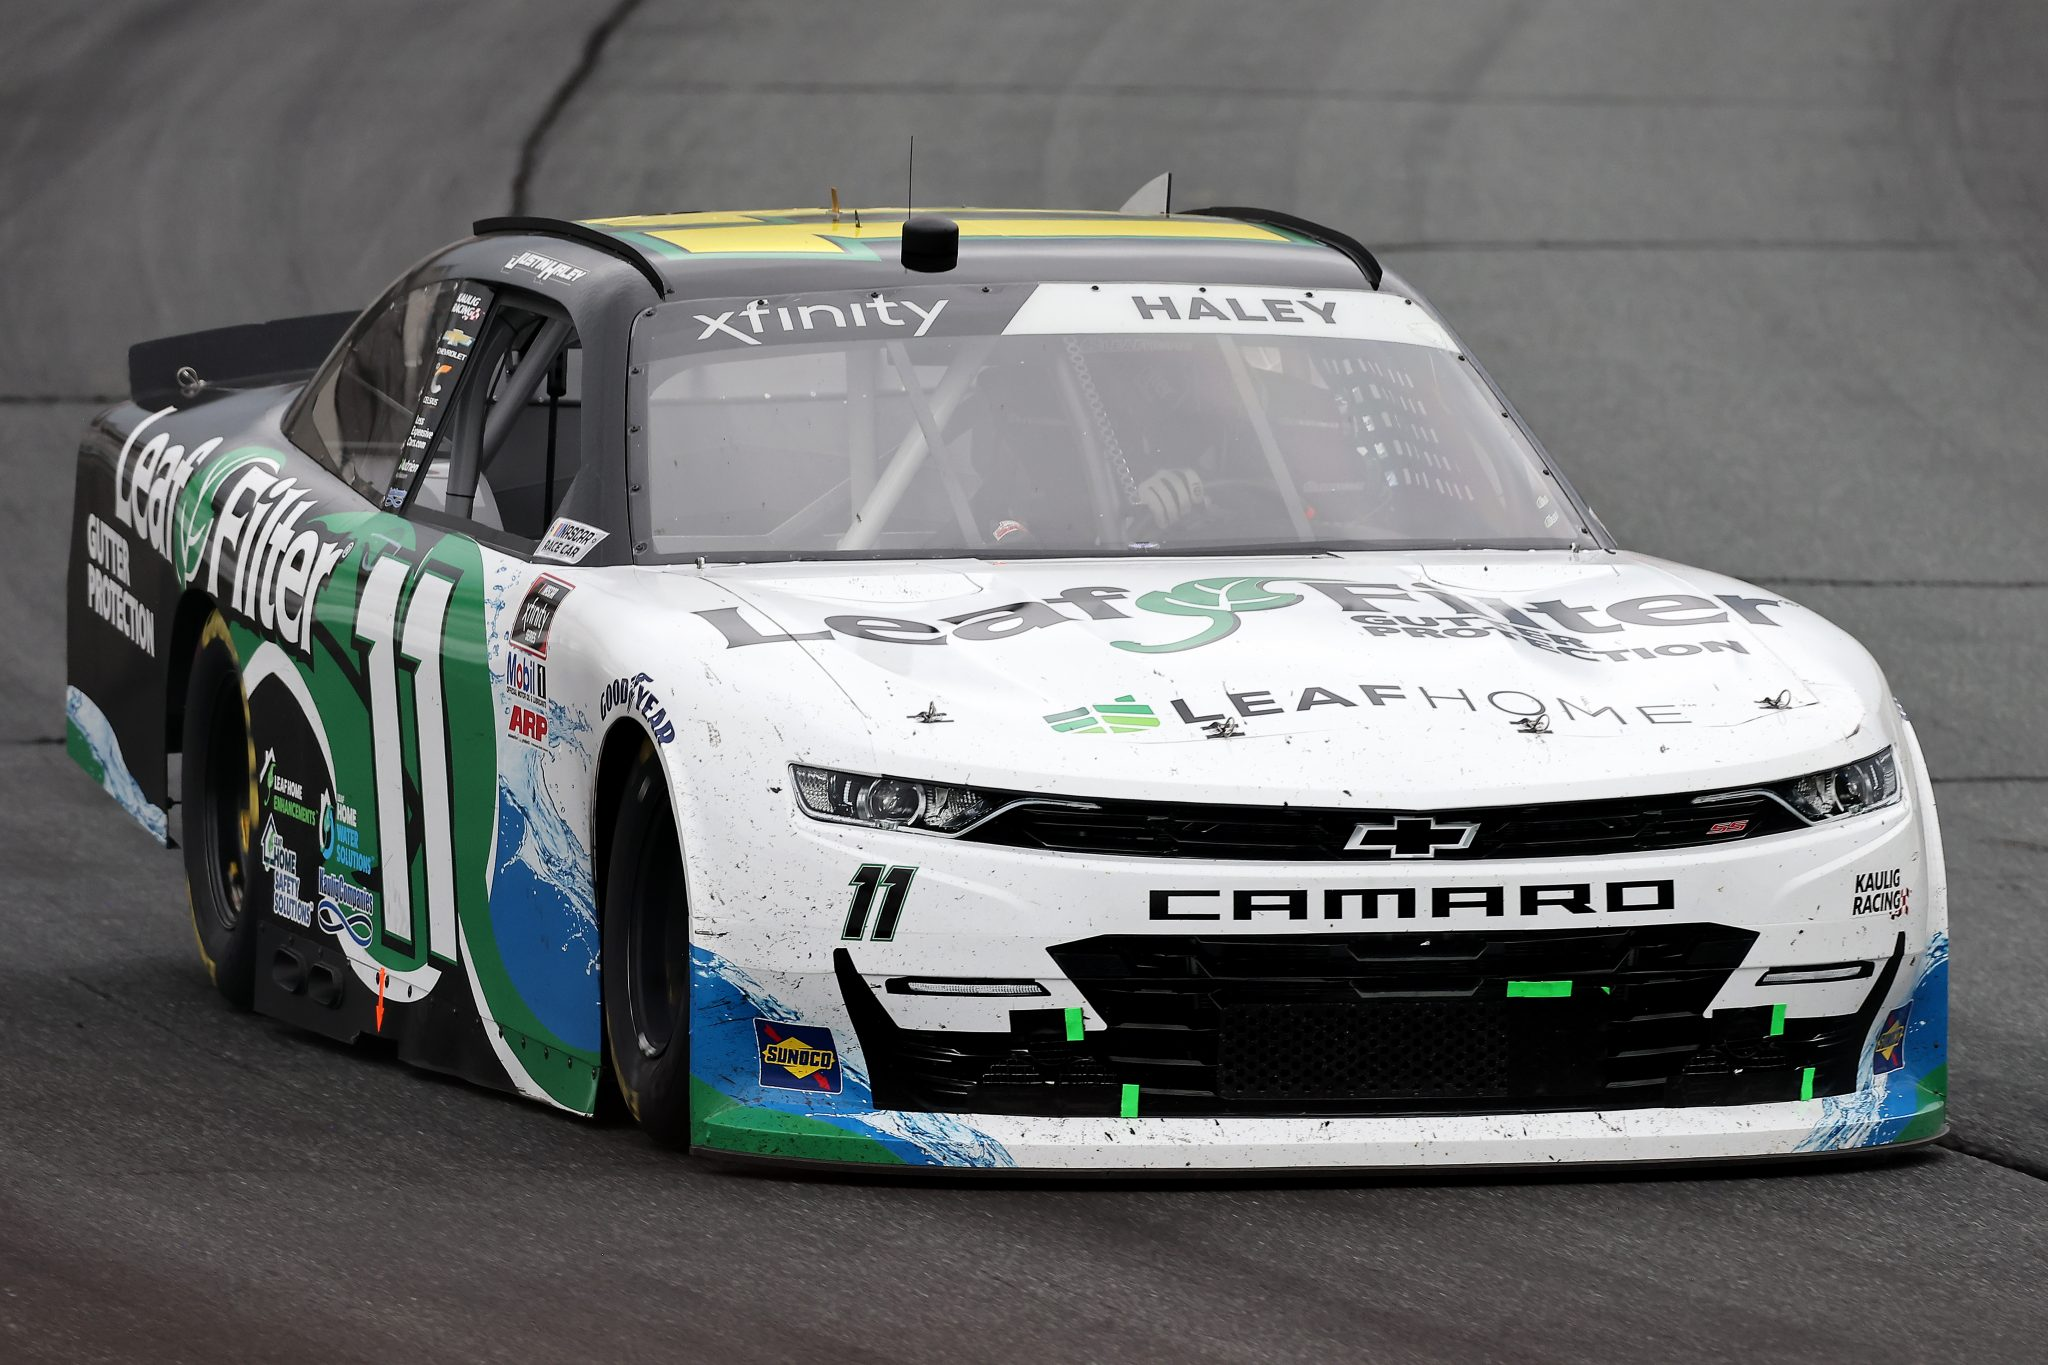 LOUDON, NEW HAMPSHIRE - JULY 17: Justin Haley, driver of the #11 LeafFilter Gutter Protection Chevrolet, drives during the NASCAR Xfinity Series Ambetter Get Vaccinated 200 at New Hampshire Motor Speedway on July 17, 2021 in Loudon, New Hampshire. (Photo by James Gilbert/Getty Images) | Getty Images